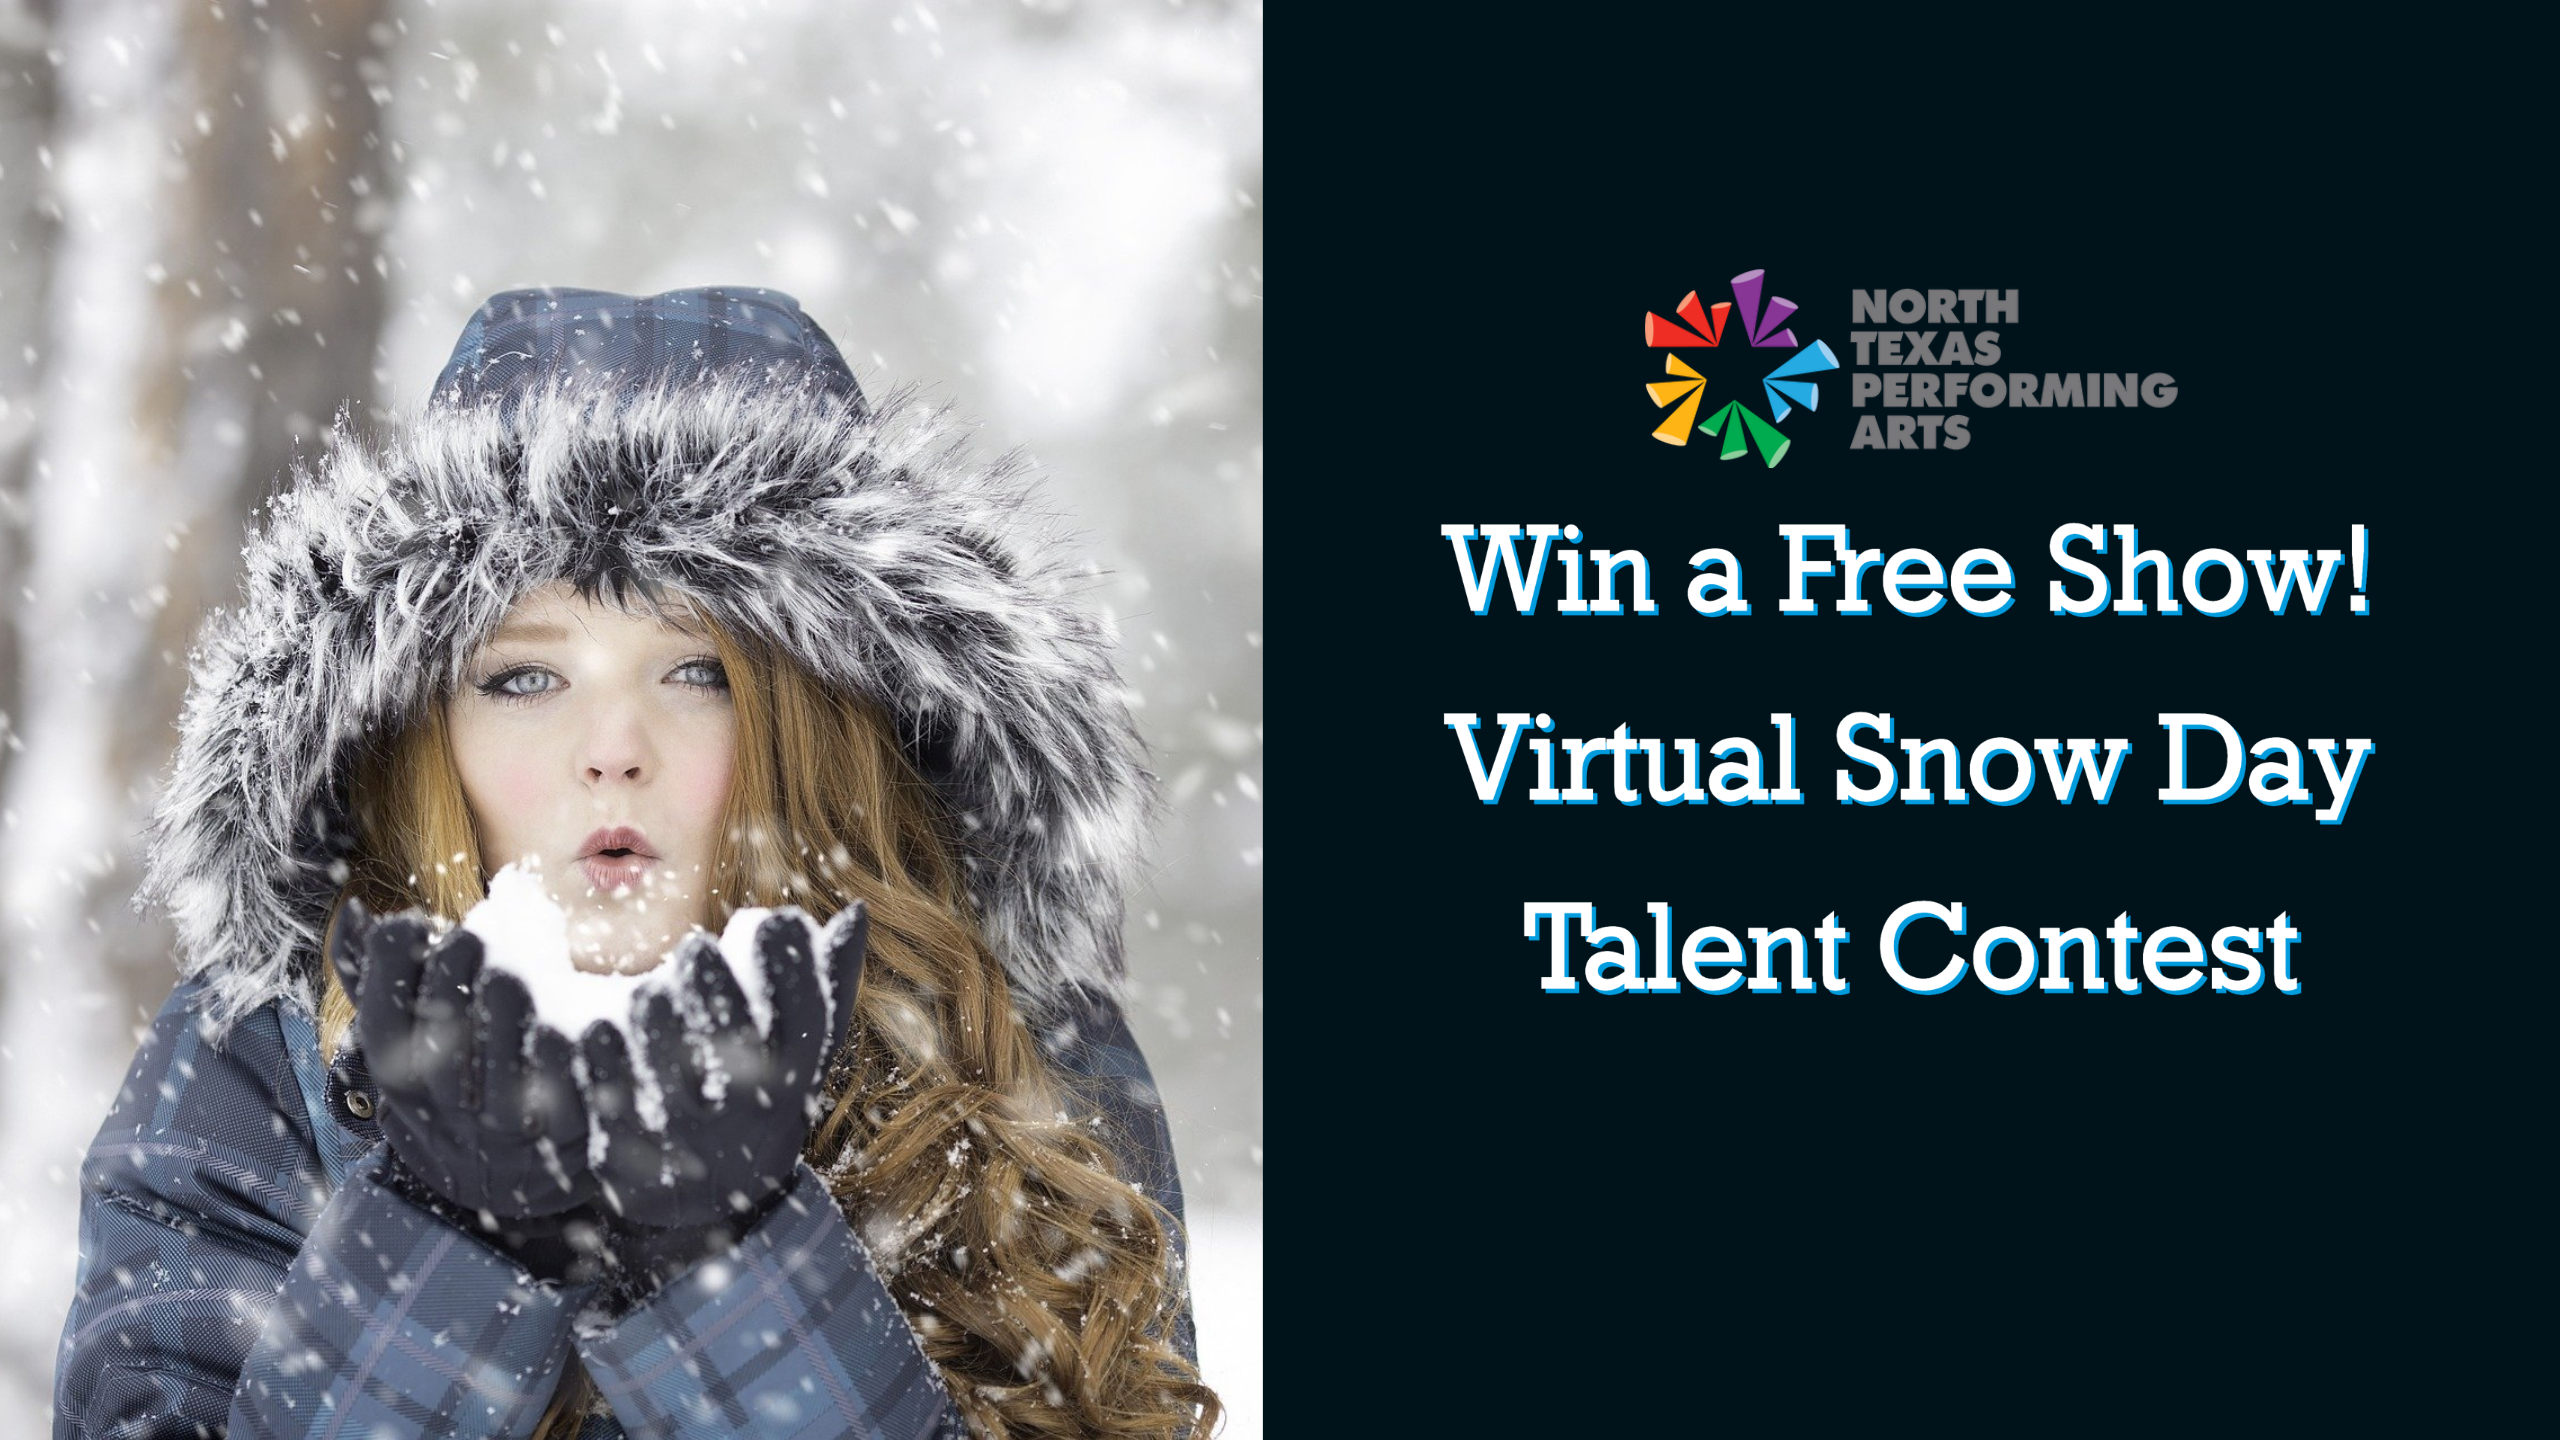 Win a free show! Virtual Snow Day Talent Contest